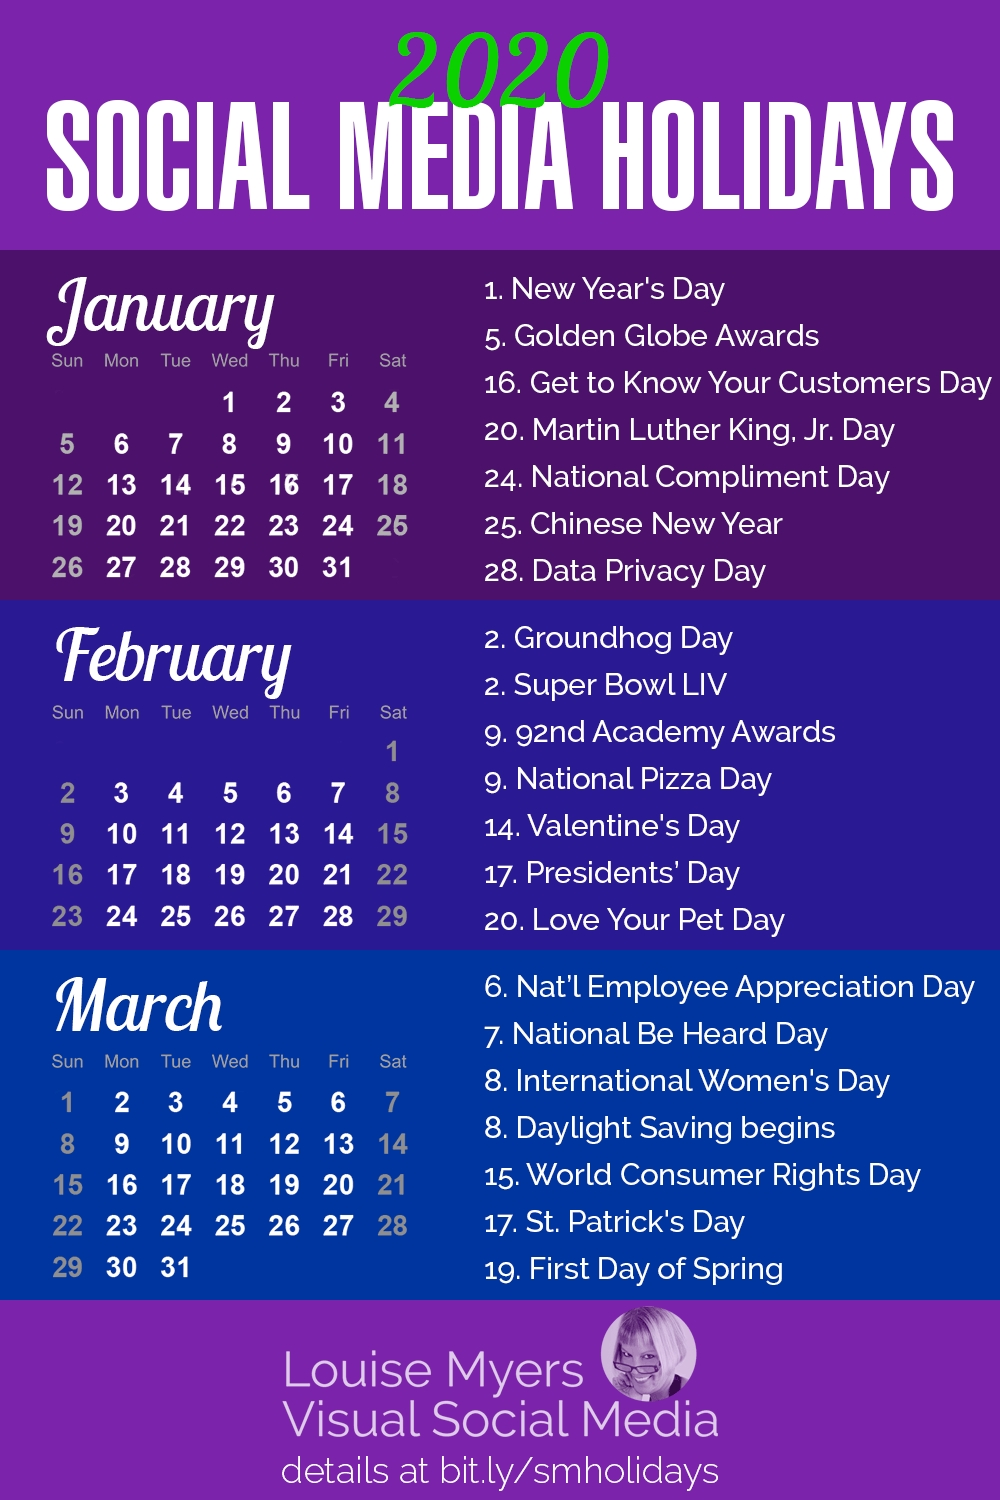 84 Social Media Holidays You Need In 2020: Indispensable! within Special Days In The Business Calendar 2020